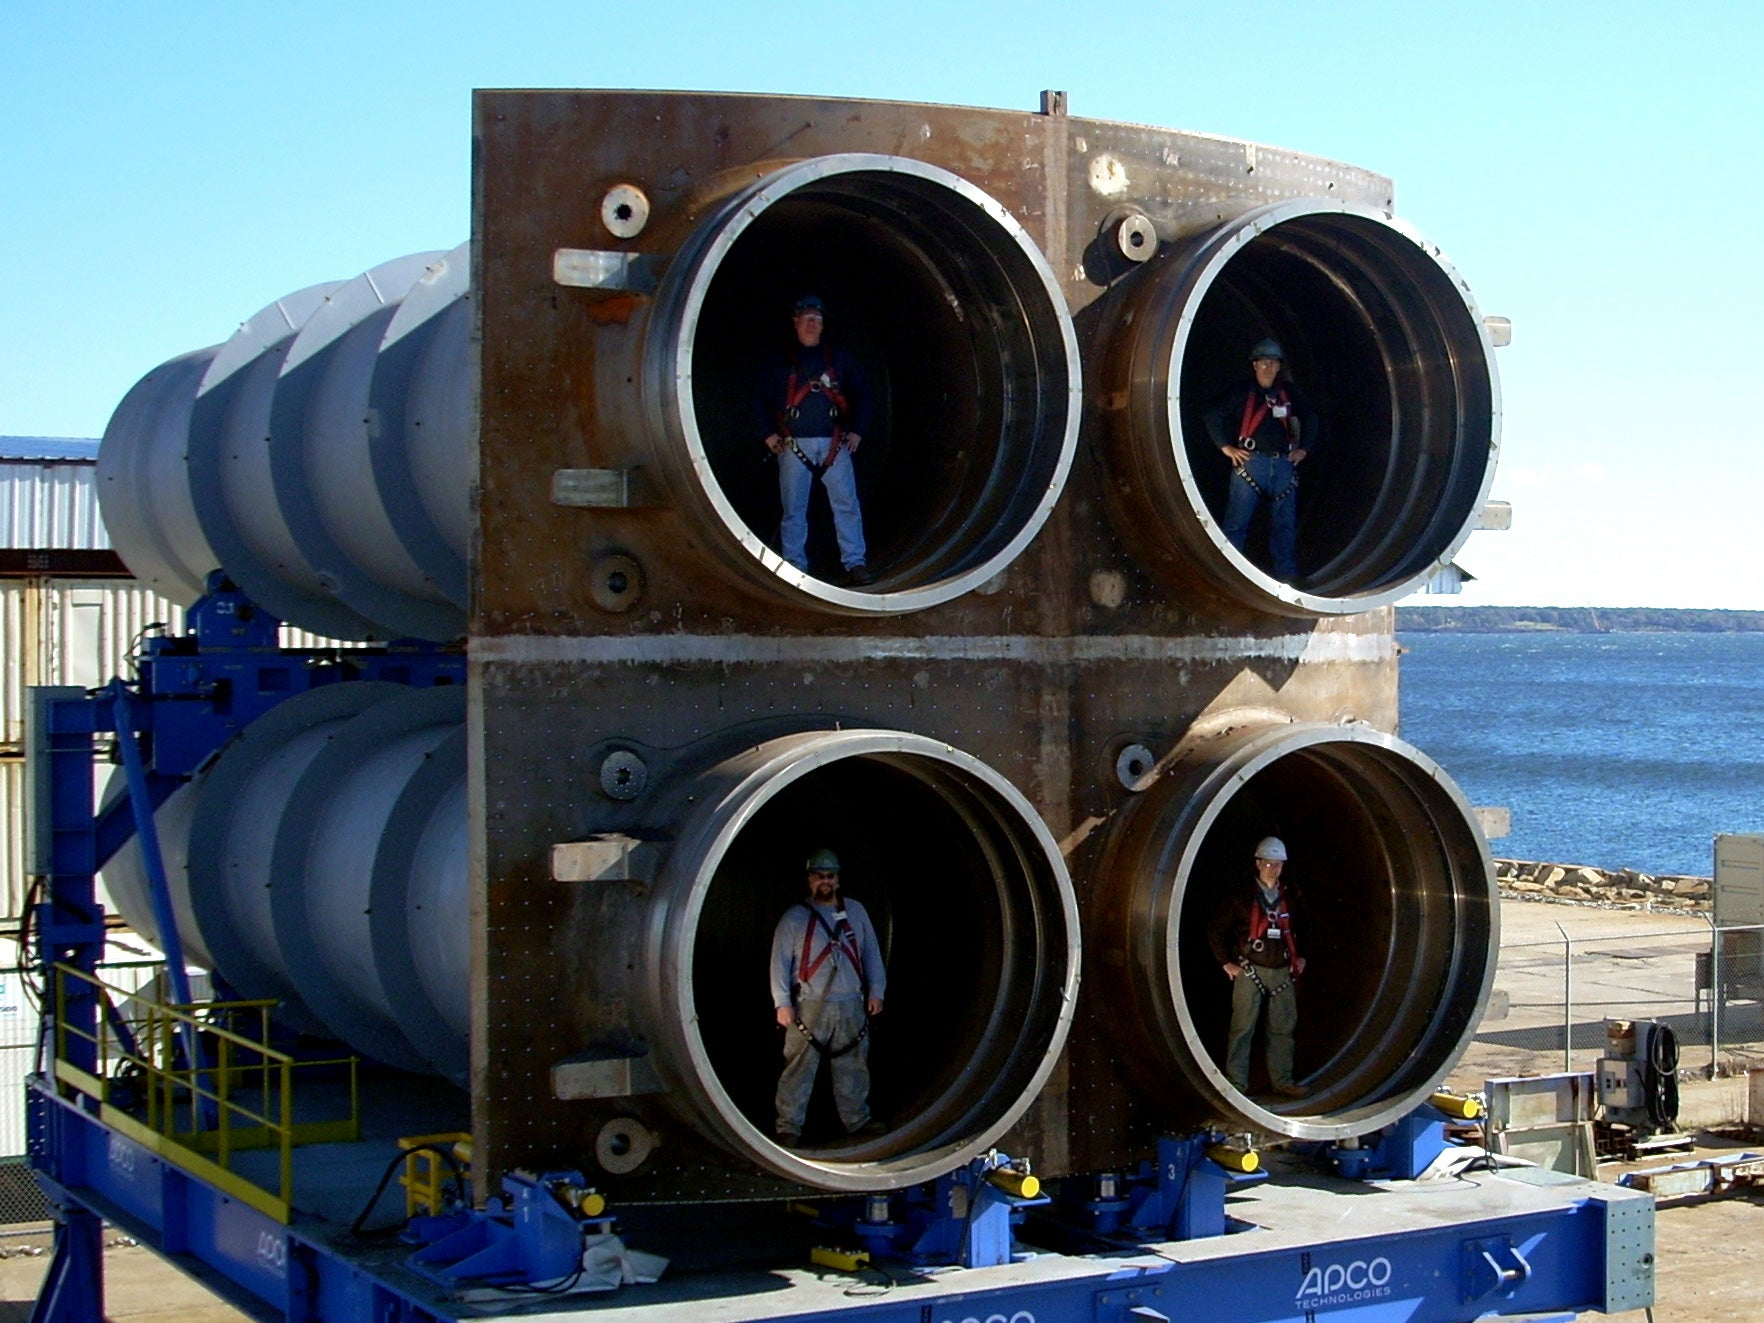 The giant tubes that launch missiles in strategic nuclear submarines